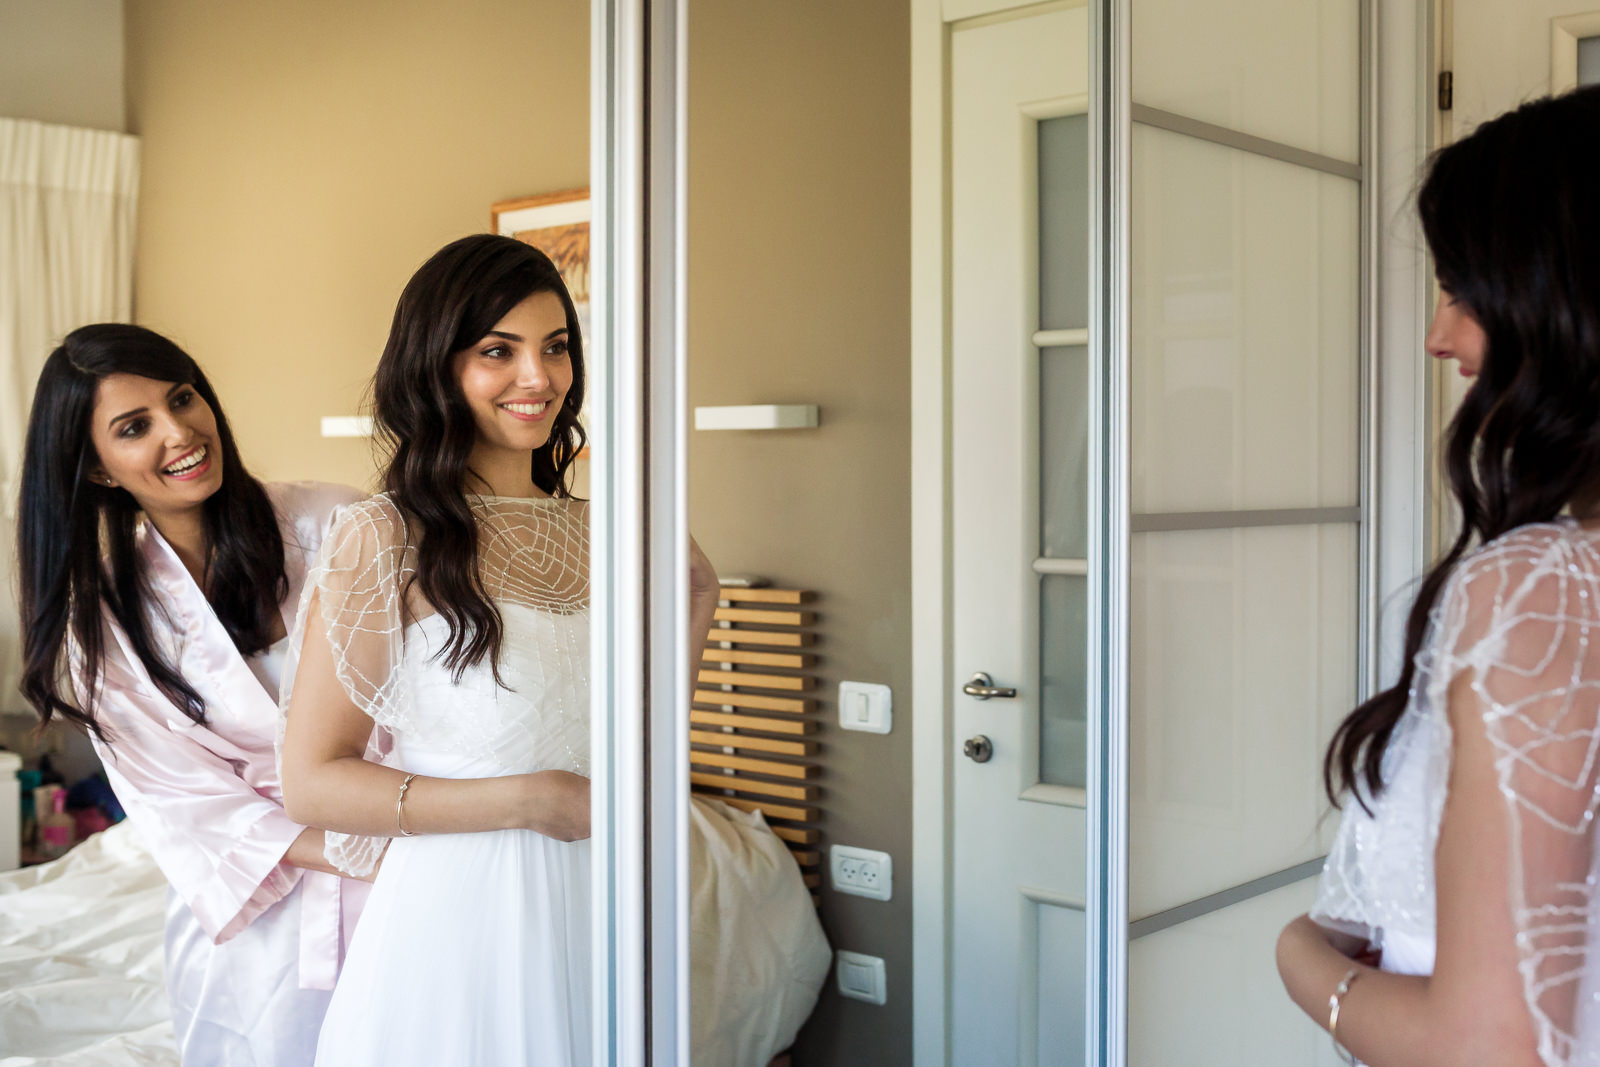 Sister of a bride helps her put wedding dress on her wedding day